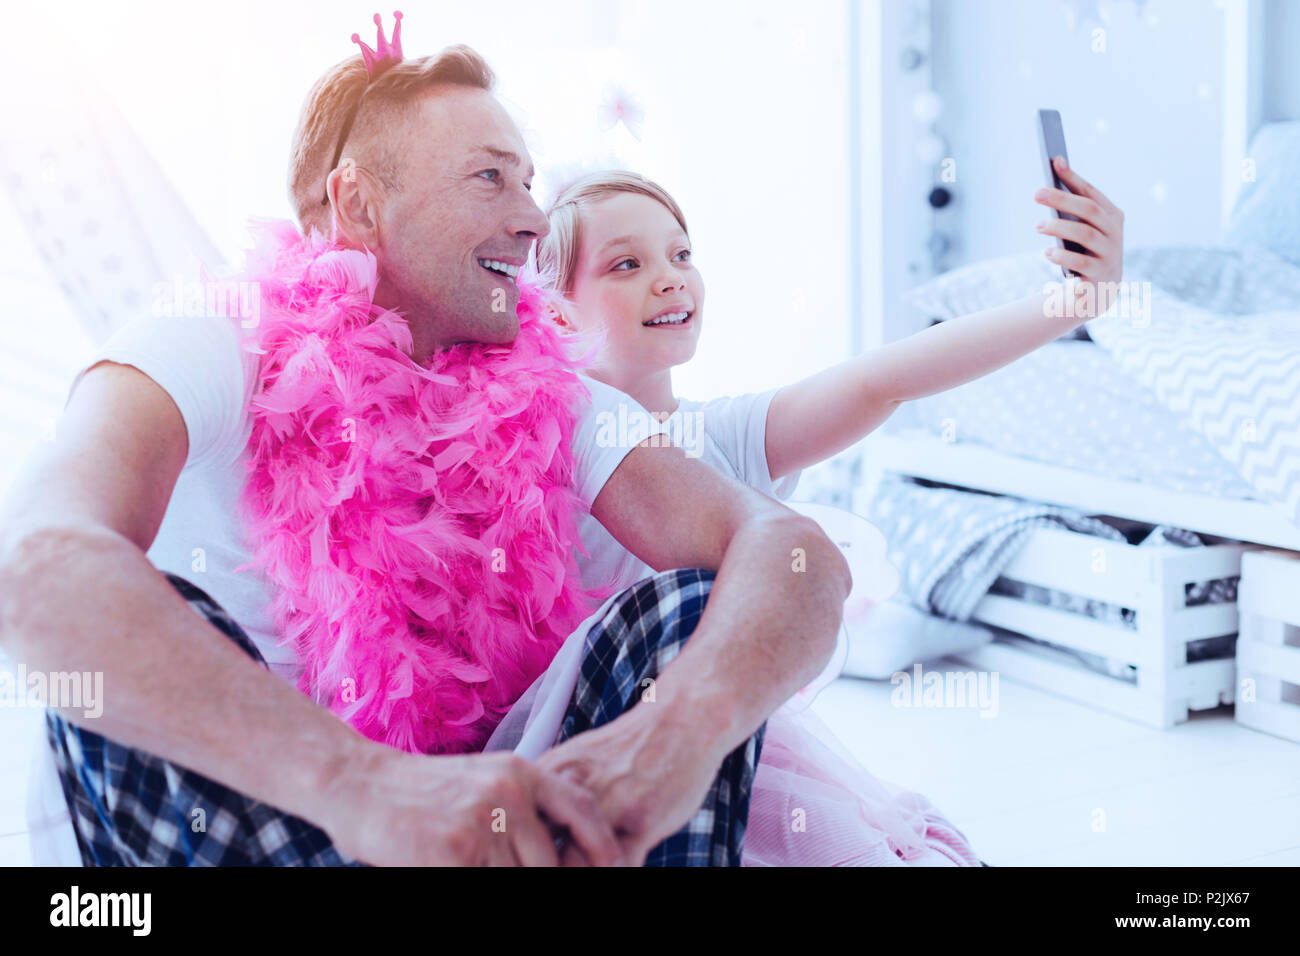 Adorable daughter and father taking selfie - Stock Image